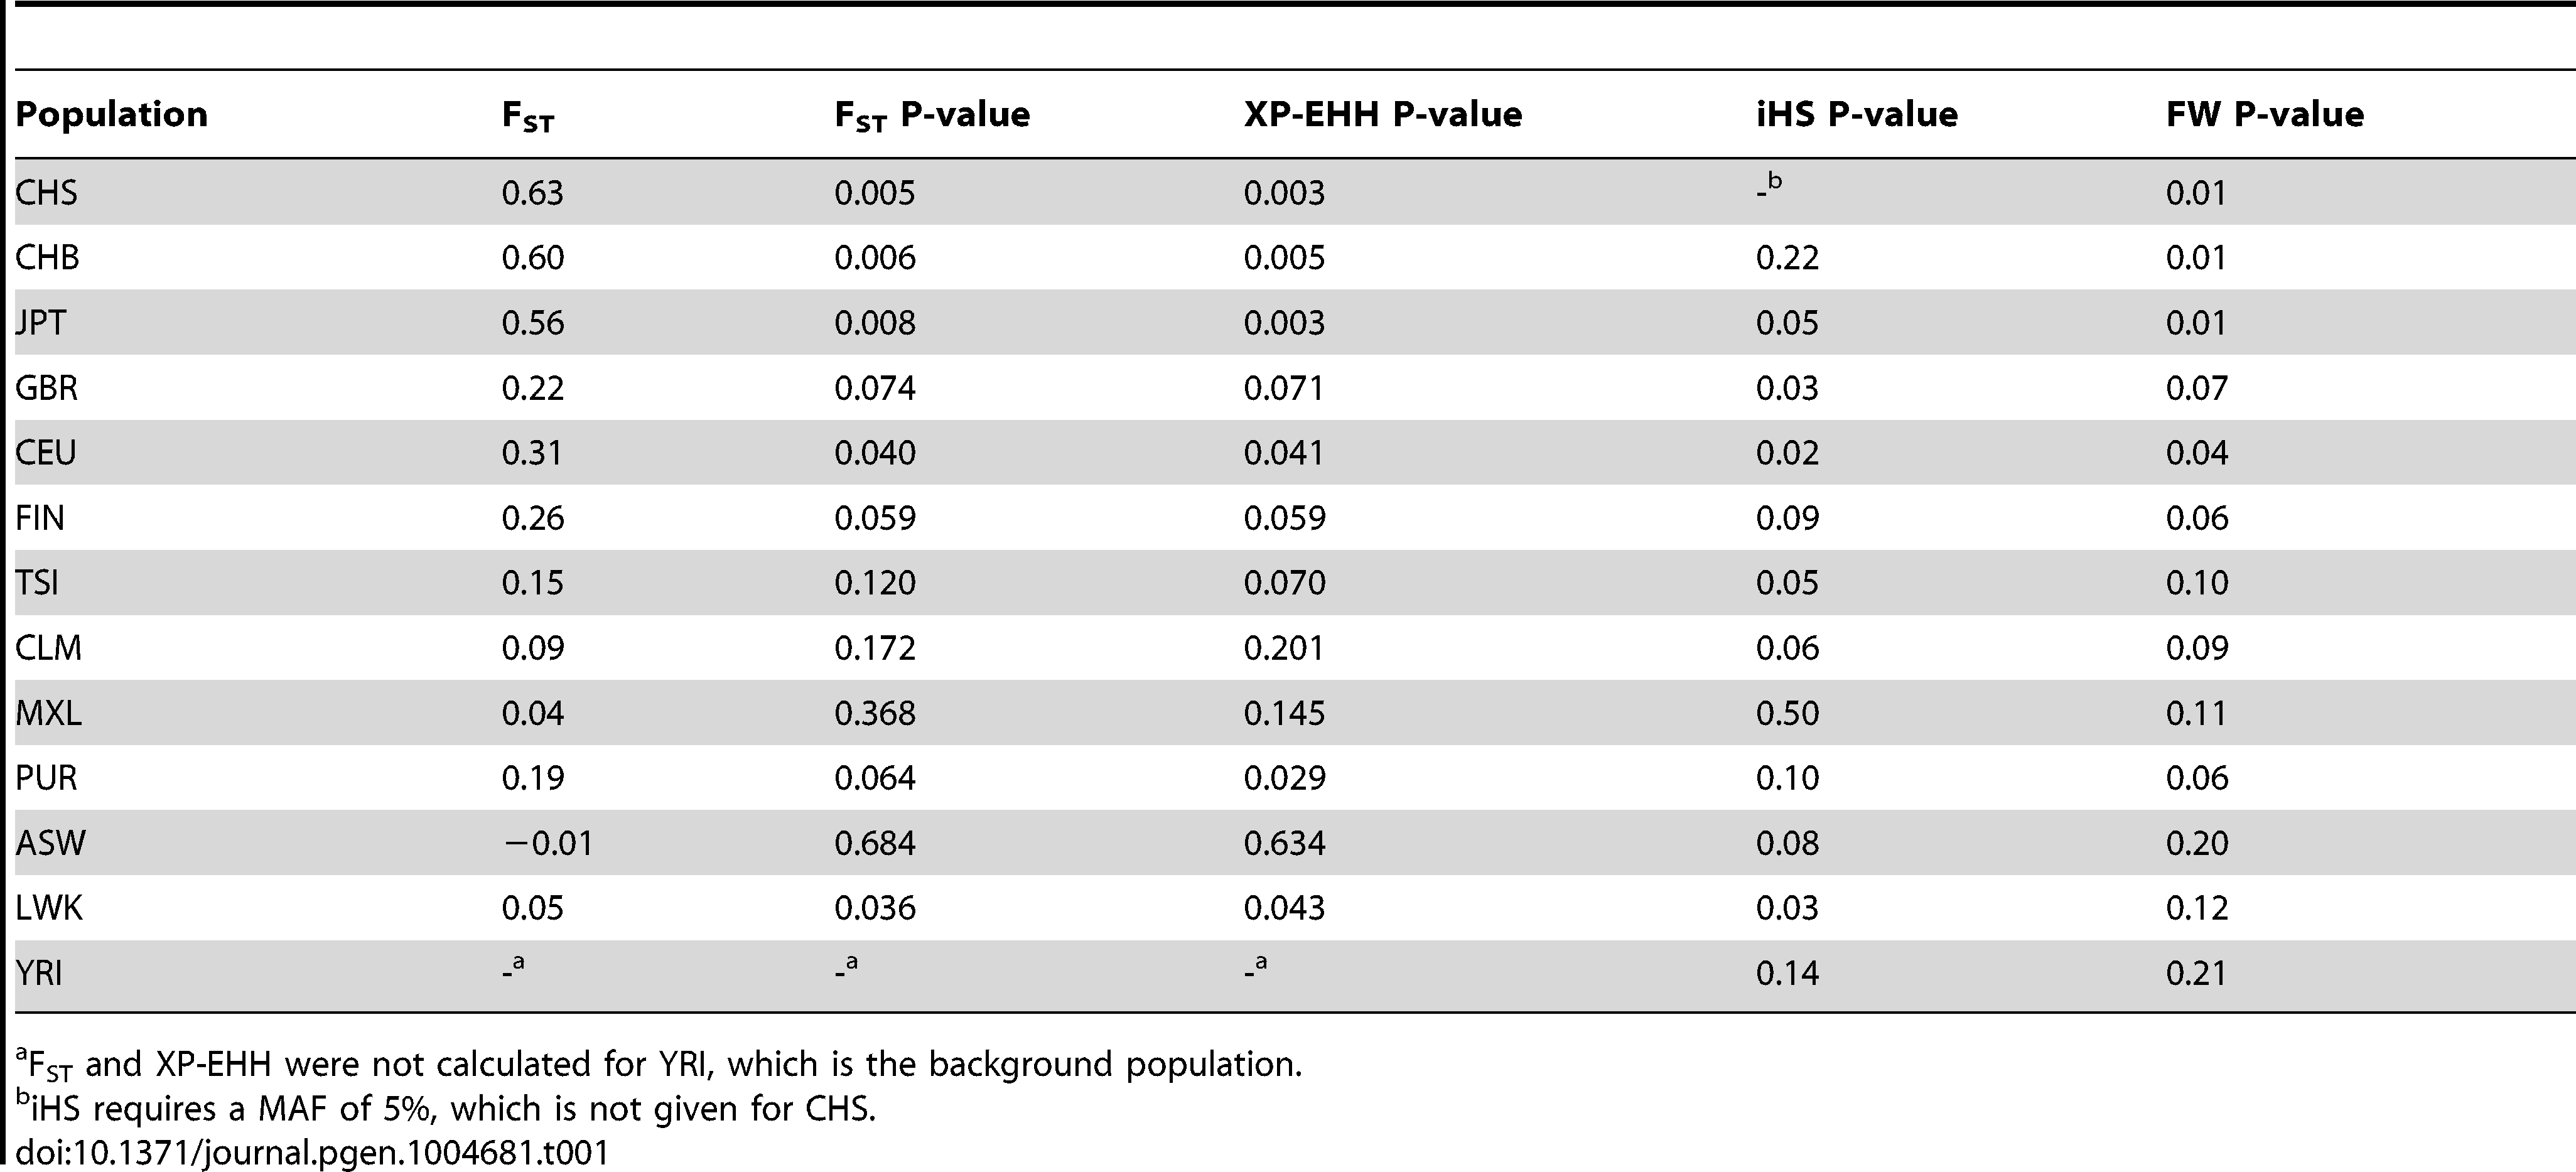 F<sub>ST</sub> values and for F<sub>ST</sub>, XP-EHH, iHS and Fay and Wu's H (FW) the empirical P-values are shown for rs368234815 in every population.